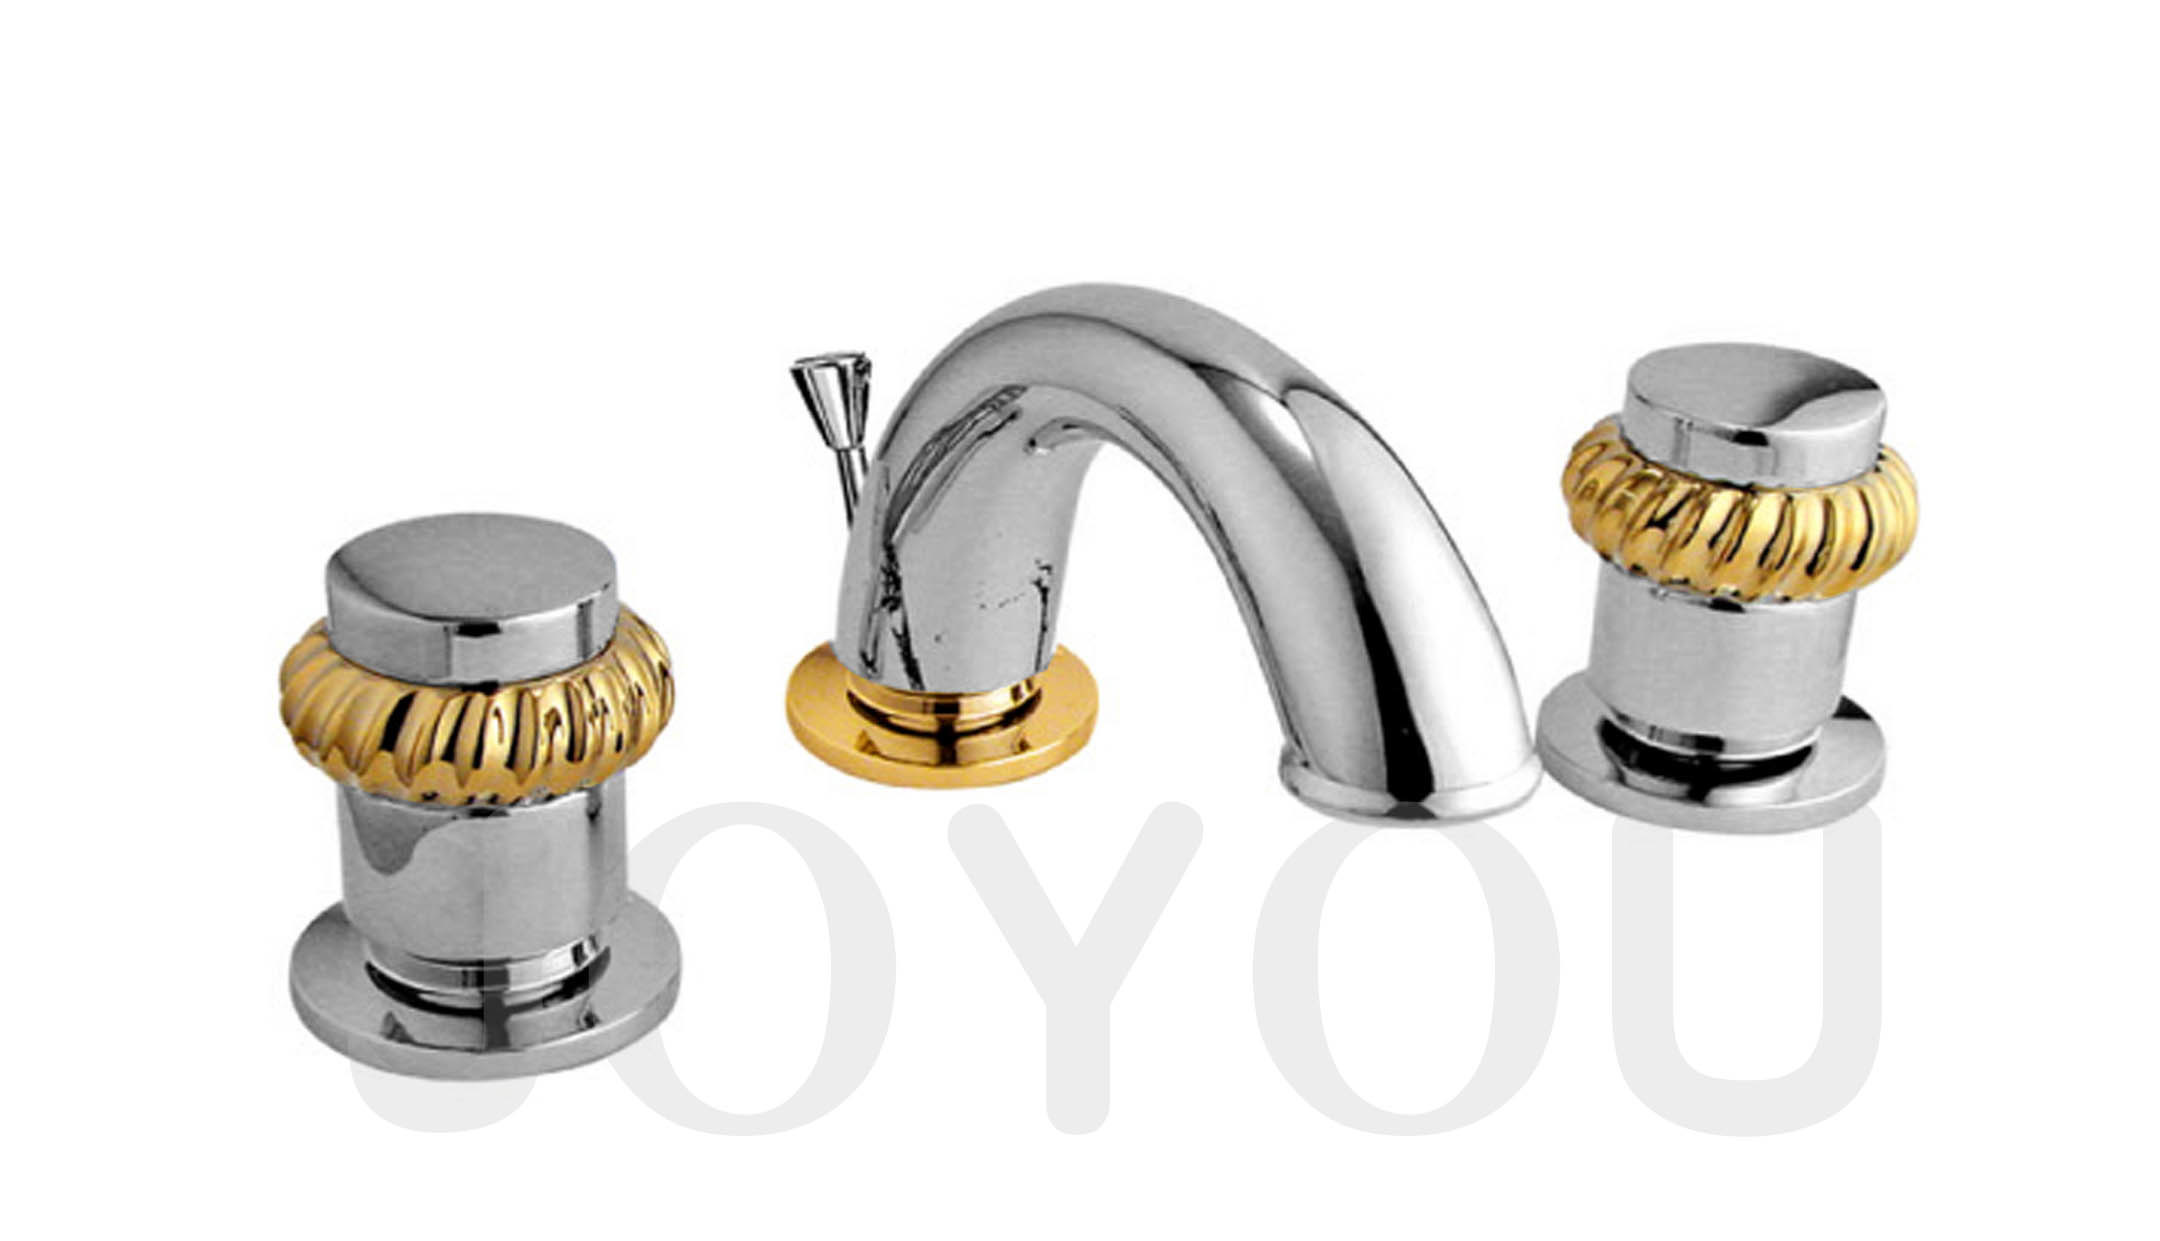 China American Style Faucet Jy08409 China American Style Faucet Faucet